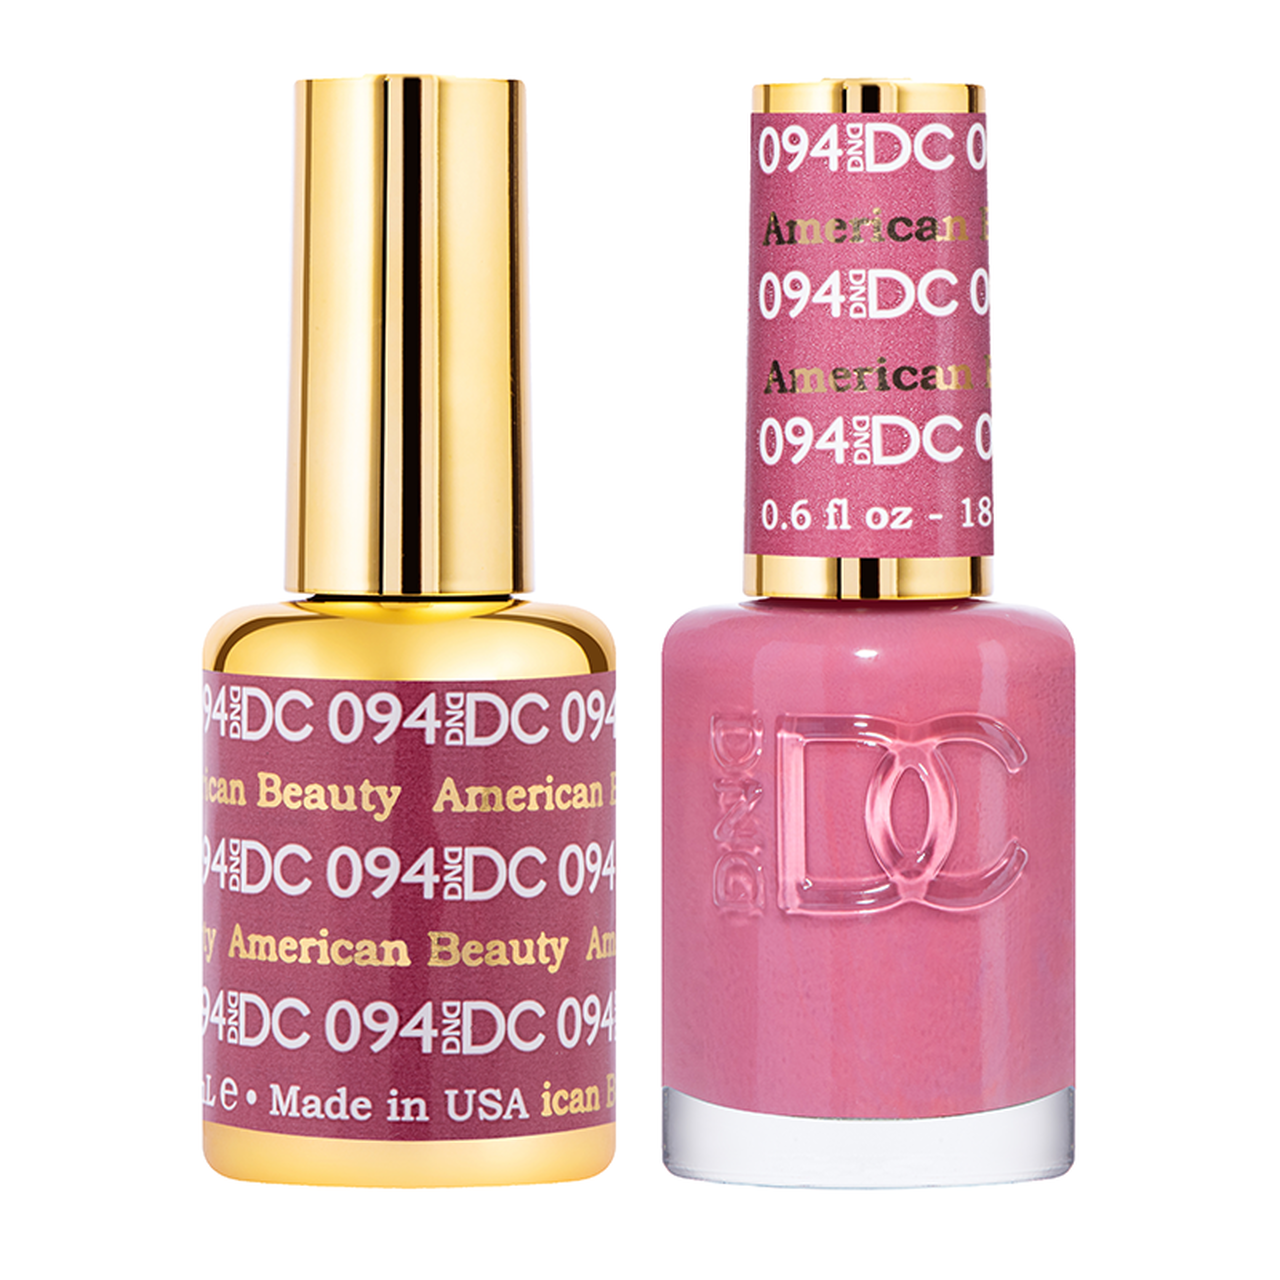 DND DC DUO GEL - #094 AMERICAN BEAUTY